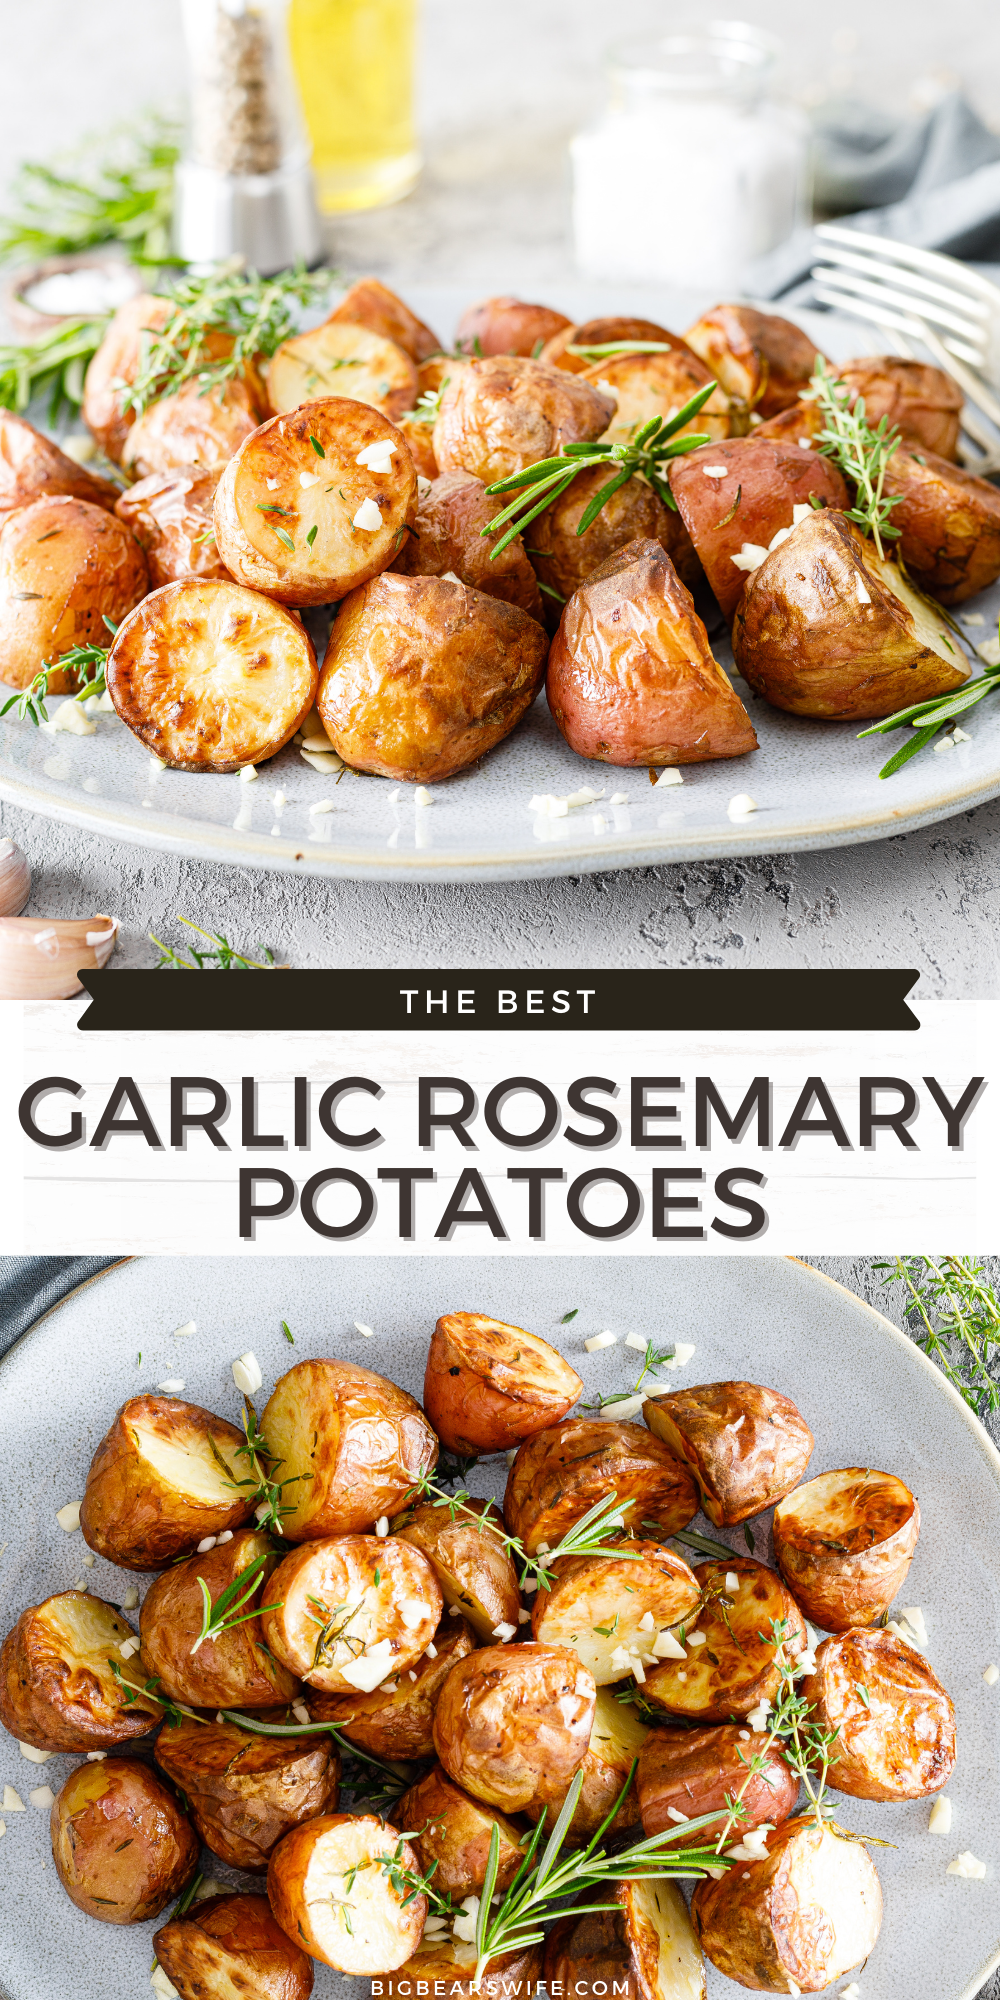 This easy Garlic Rosemary Potatoes side dish is ready in under an hour! It's great for Thanksgiving, Christmas or just as a side for a fabulous dinner any time of year! via @bigbearswife